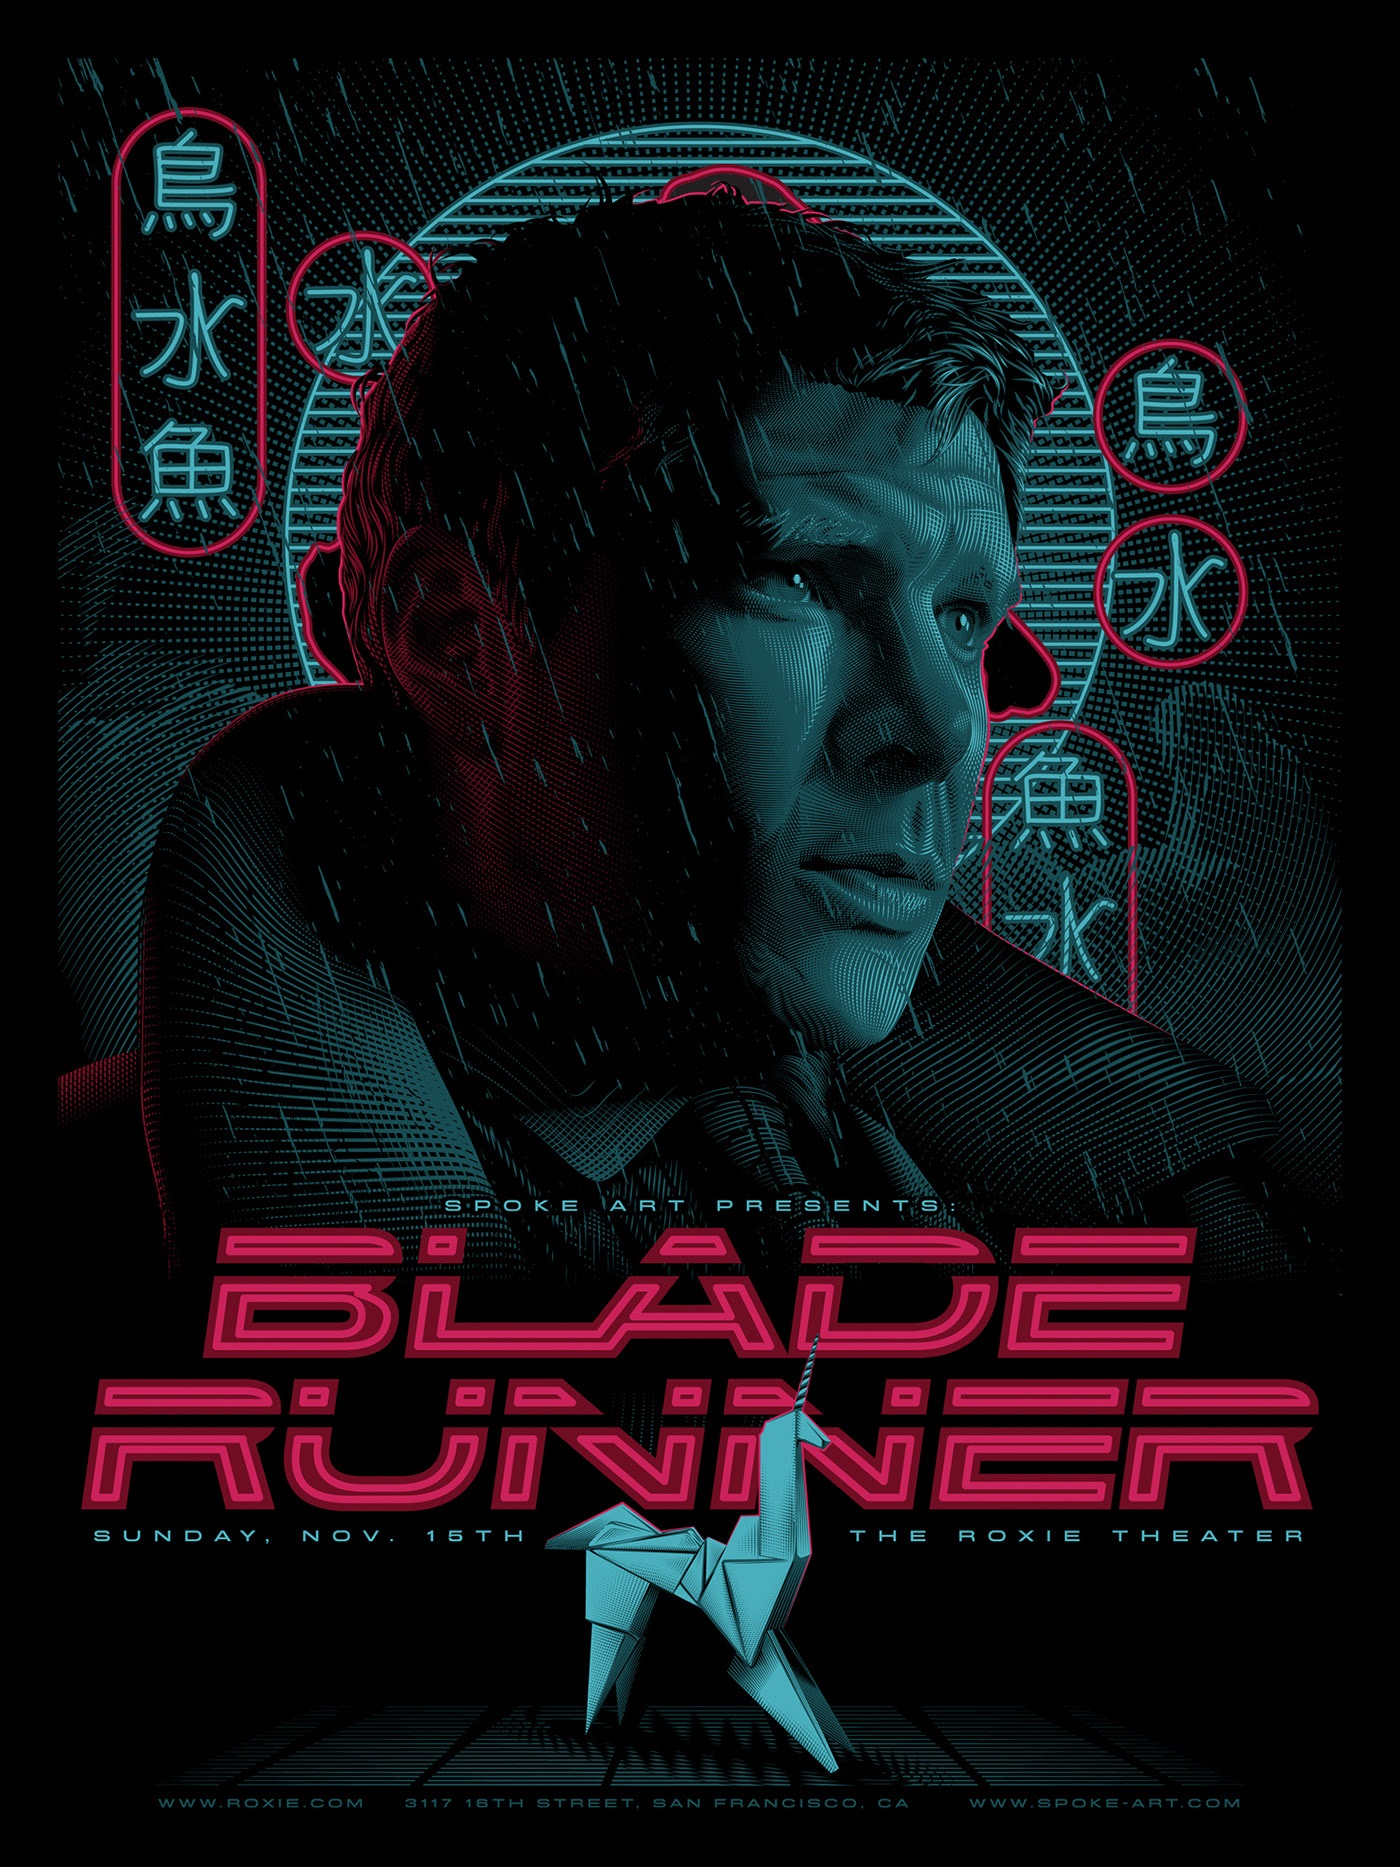 poster design portrait illustration blade runner